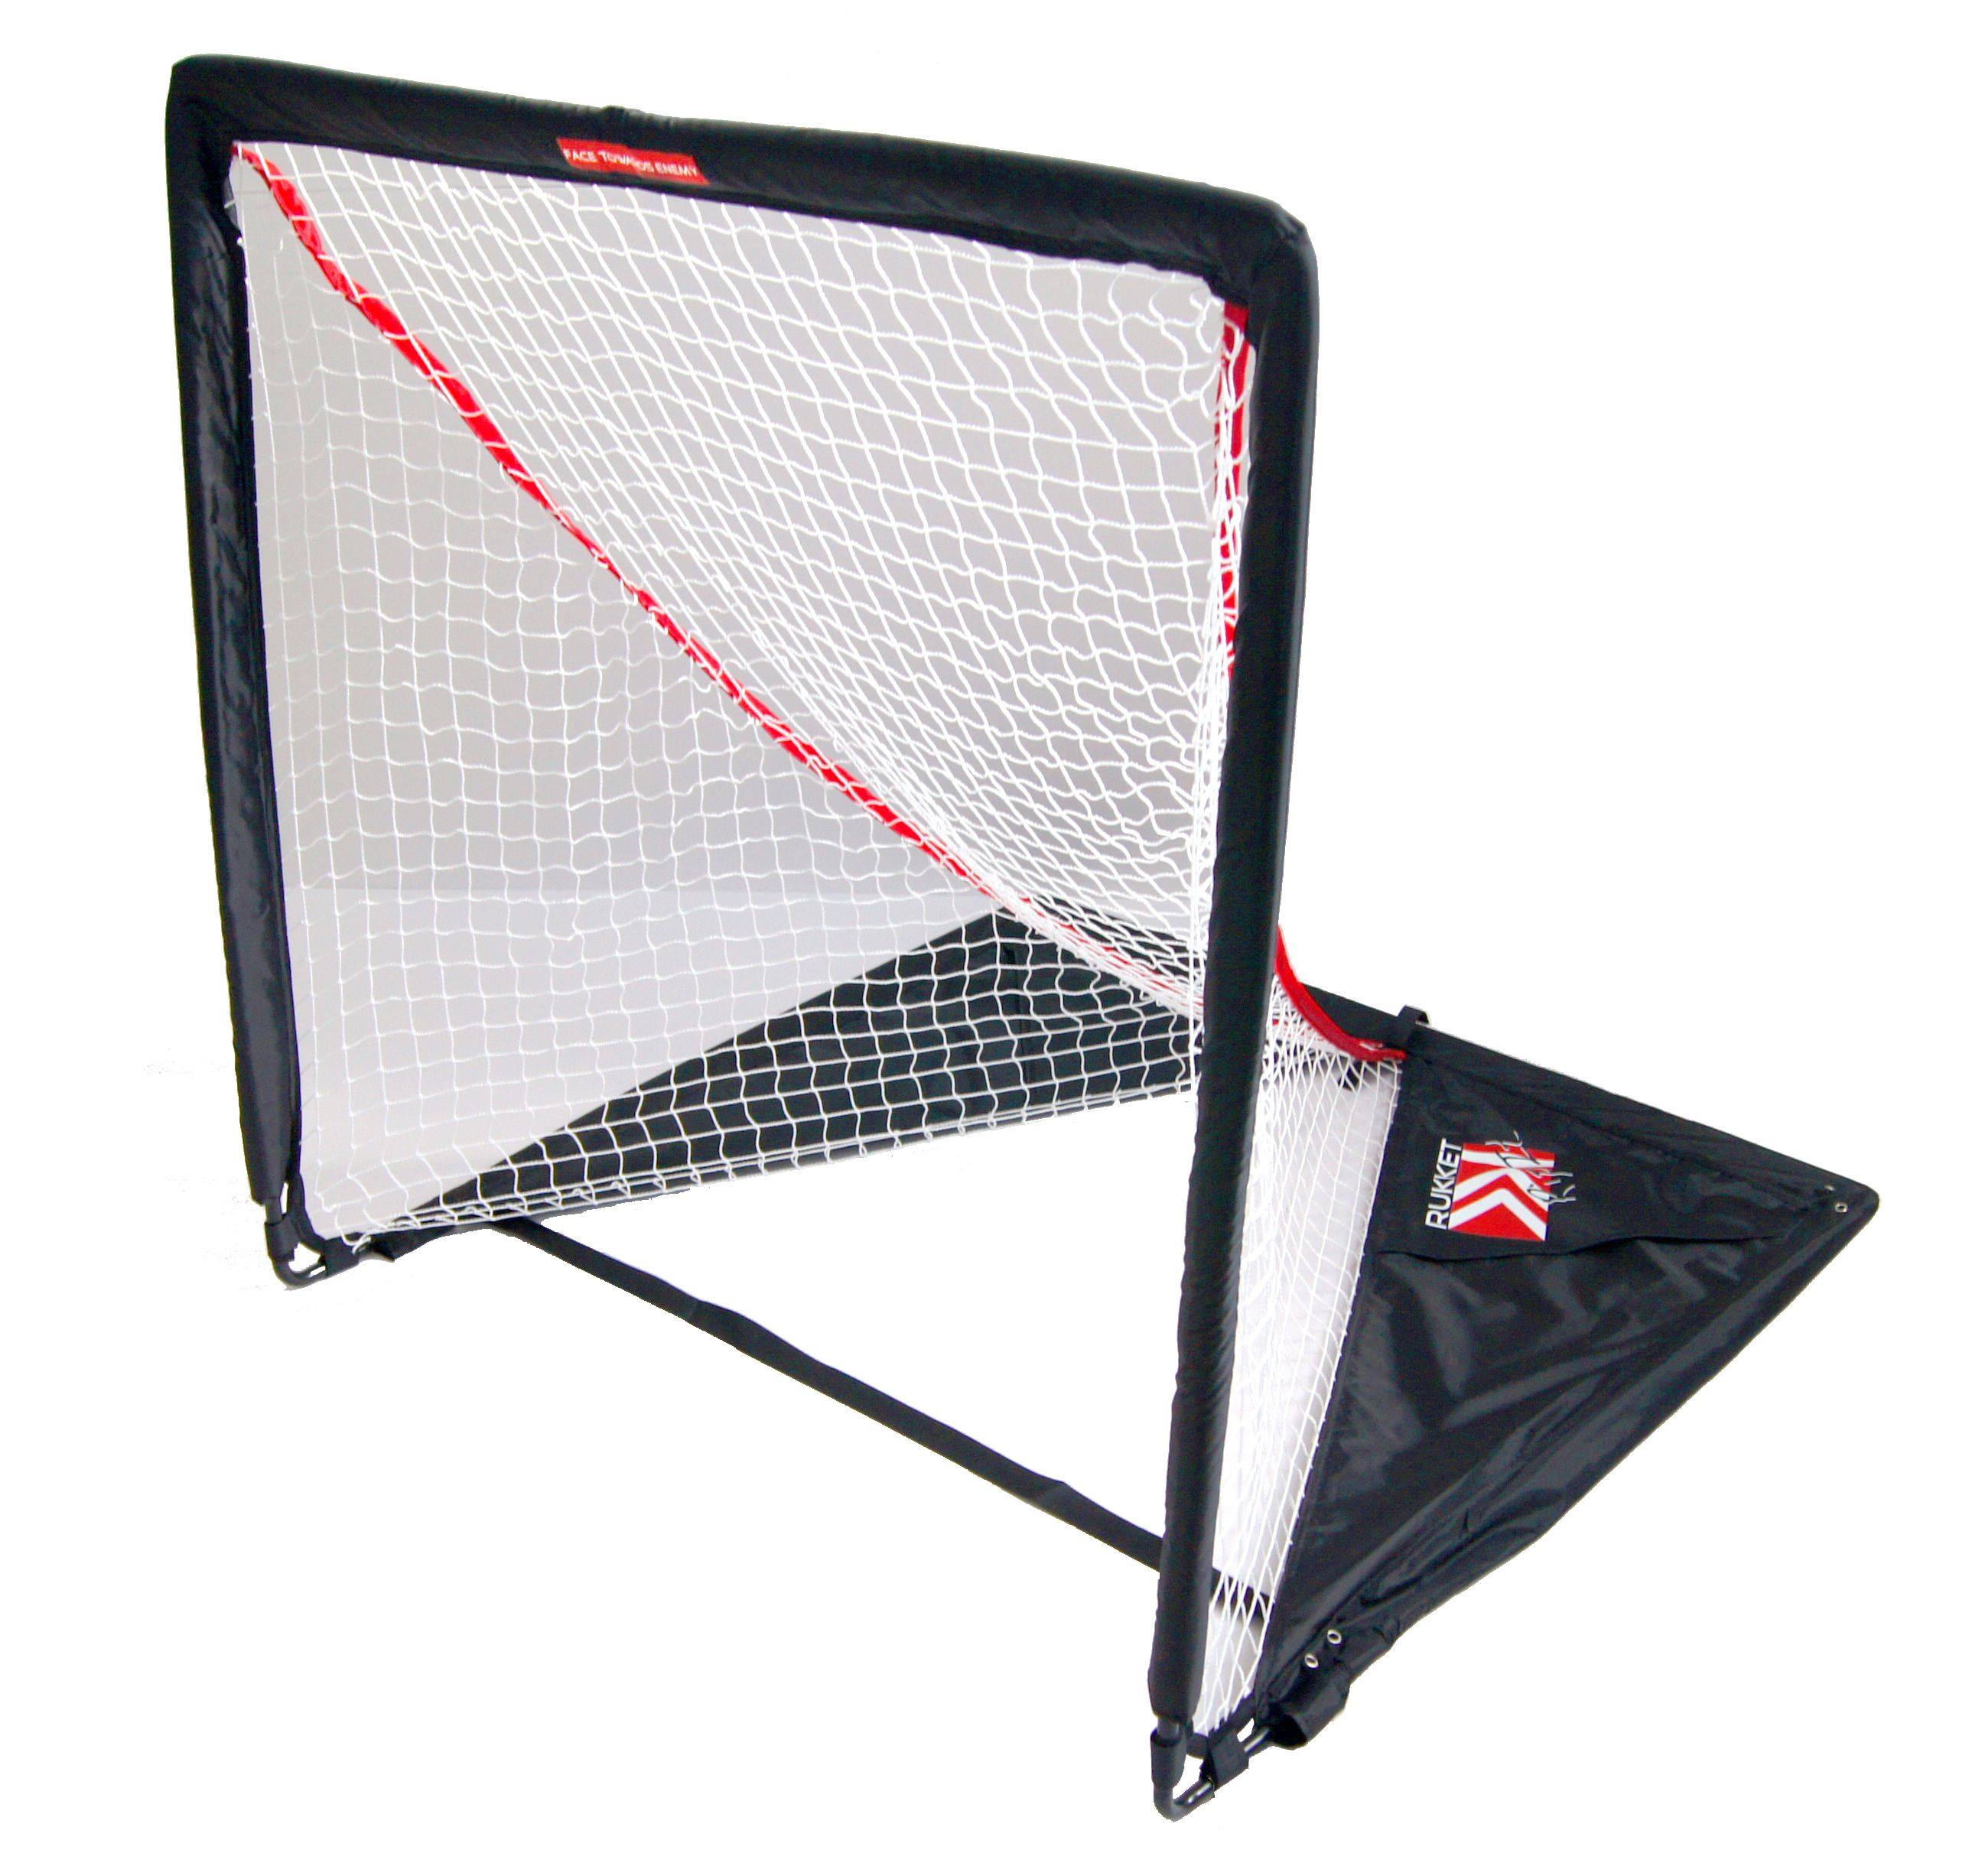 The Rukket Rip It Lacrosse goal is the lightest most portable